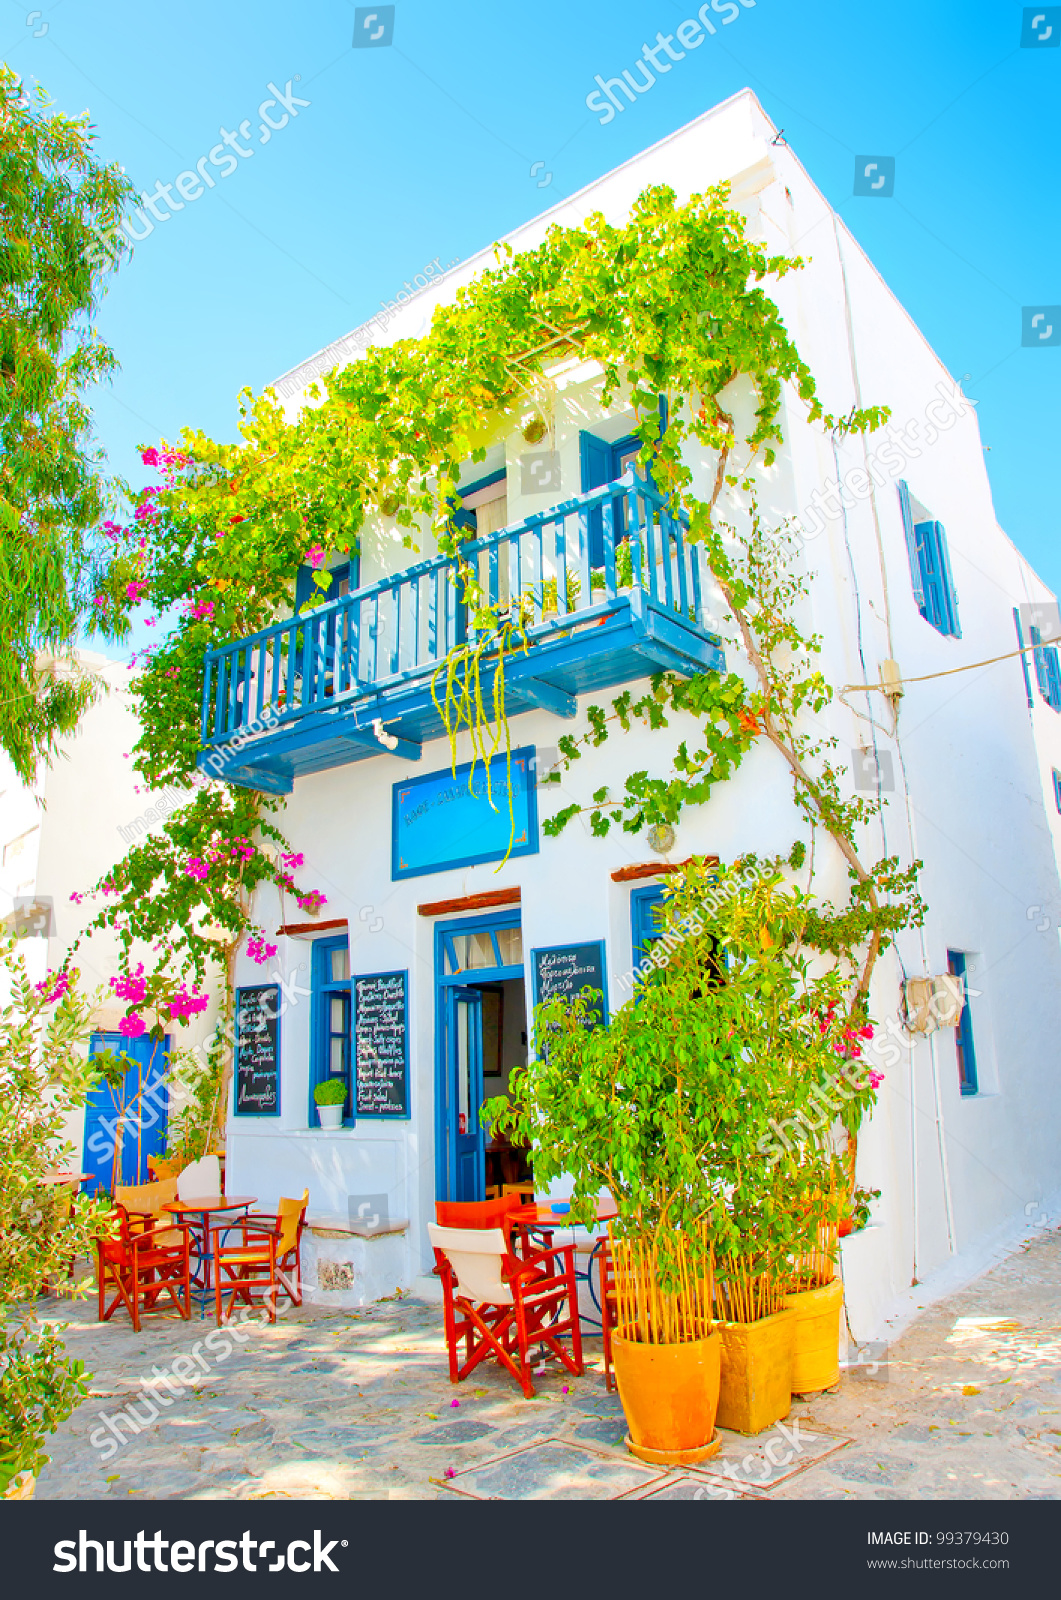 Old beautiful traditional house in chora the capital of amorgos island - Outside Of A Beautiful Cafe In An Old Traditional House In Chora The Capital Of Amorgos